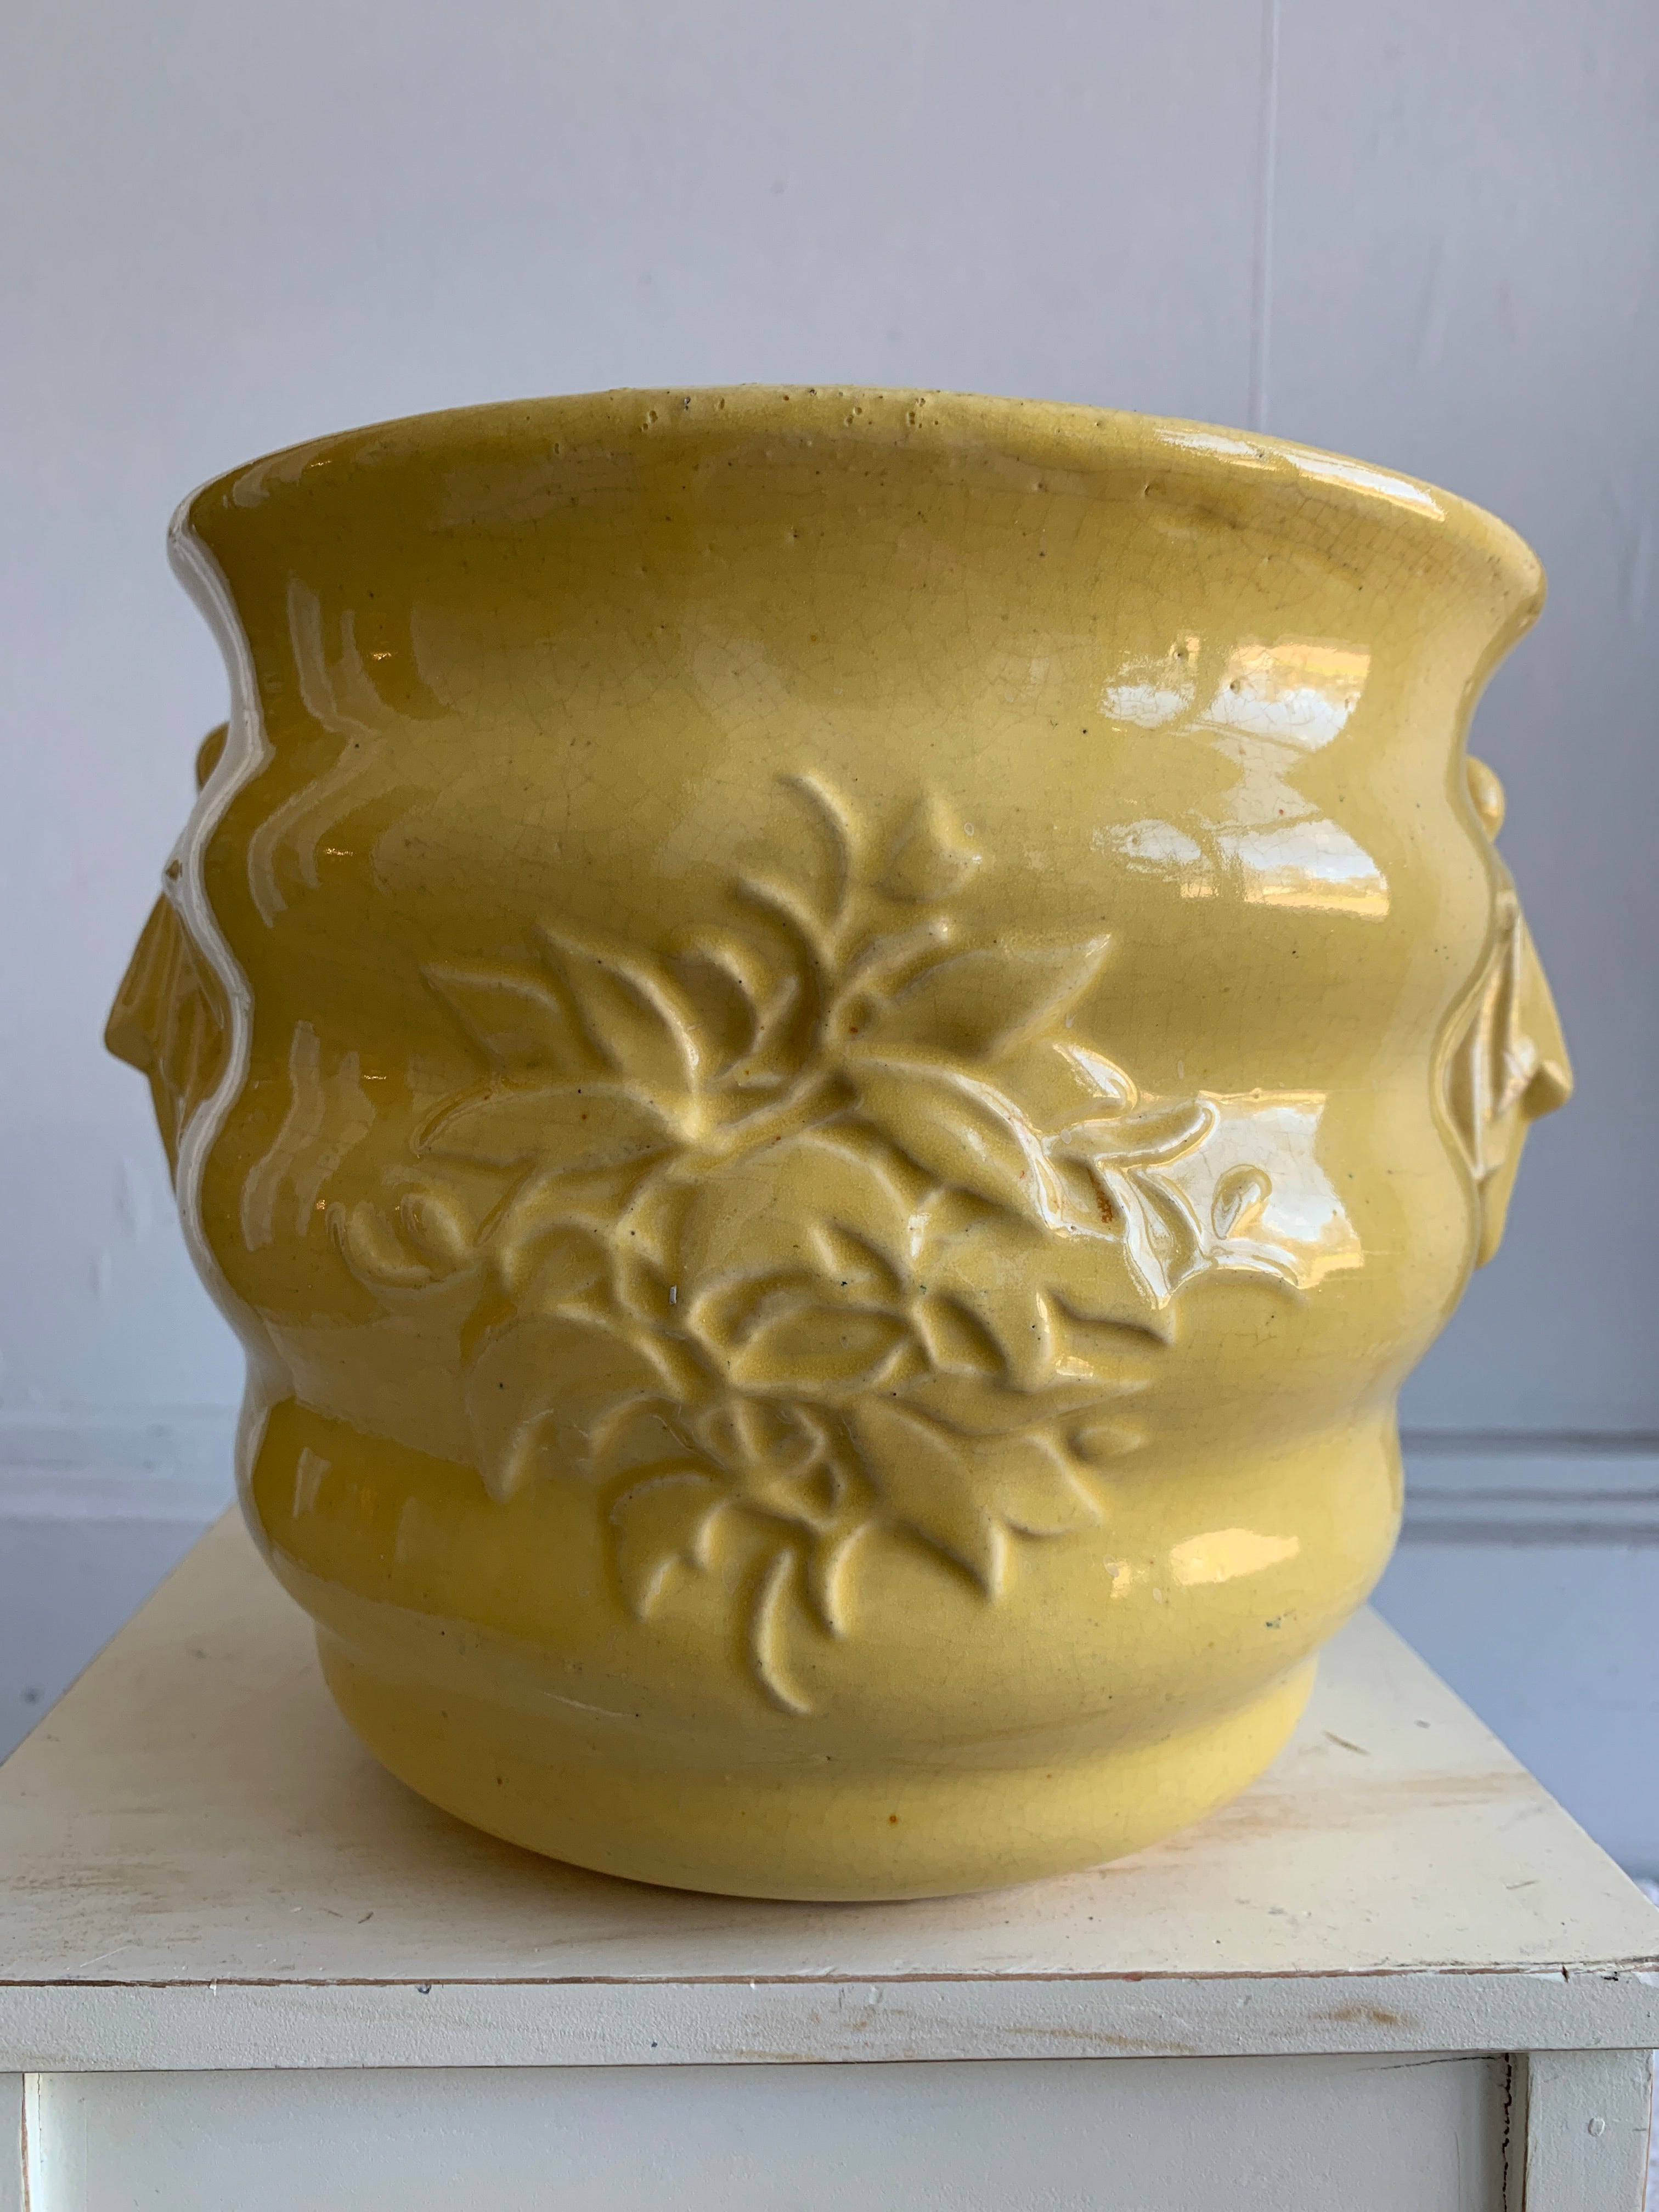 Large yellow McCoy vase